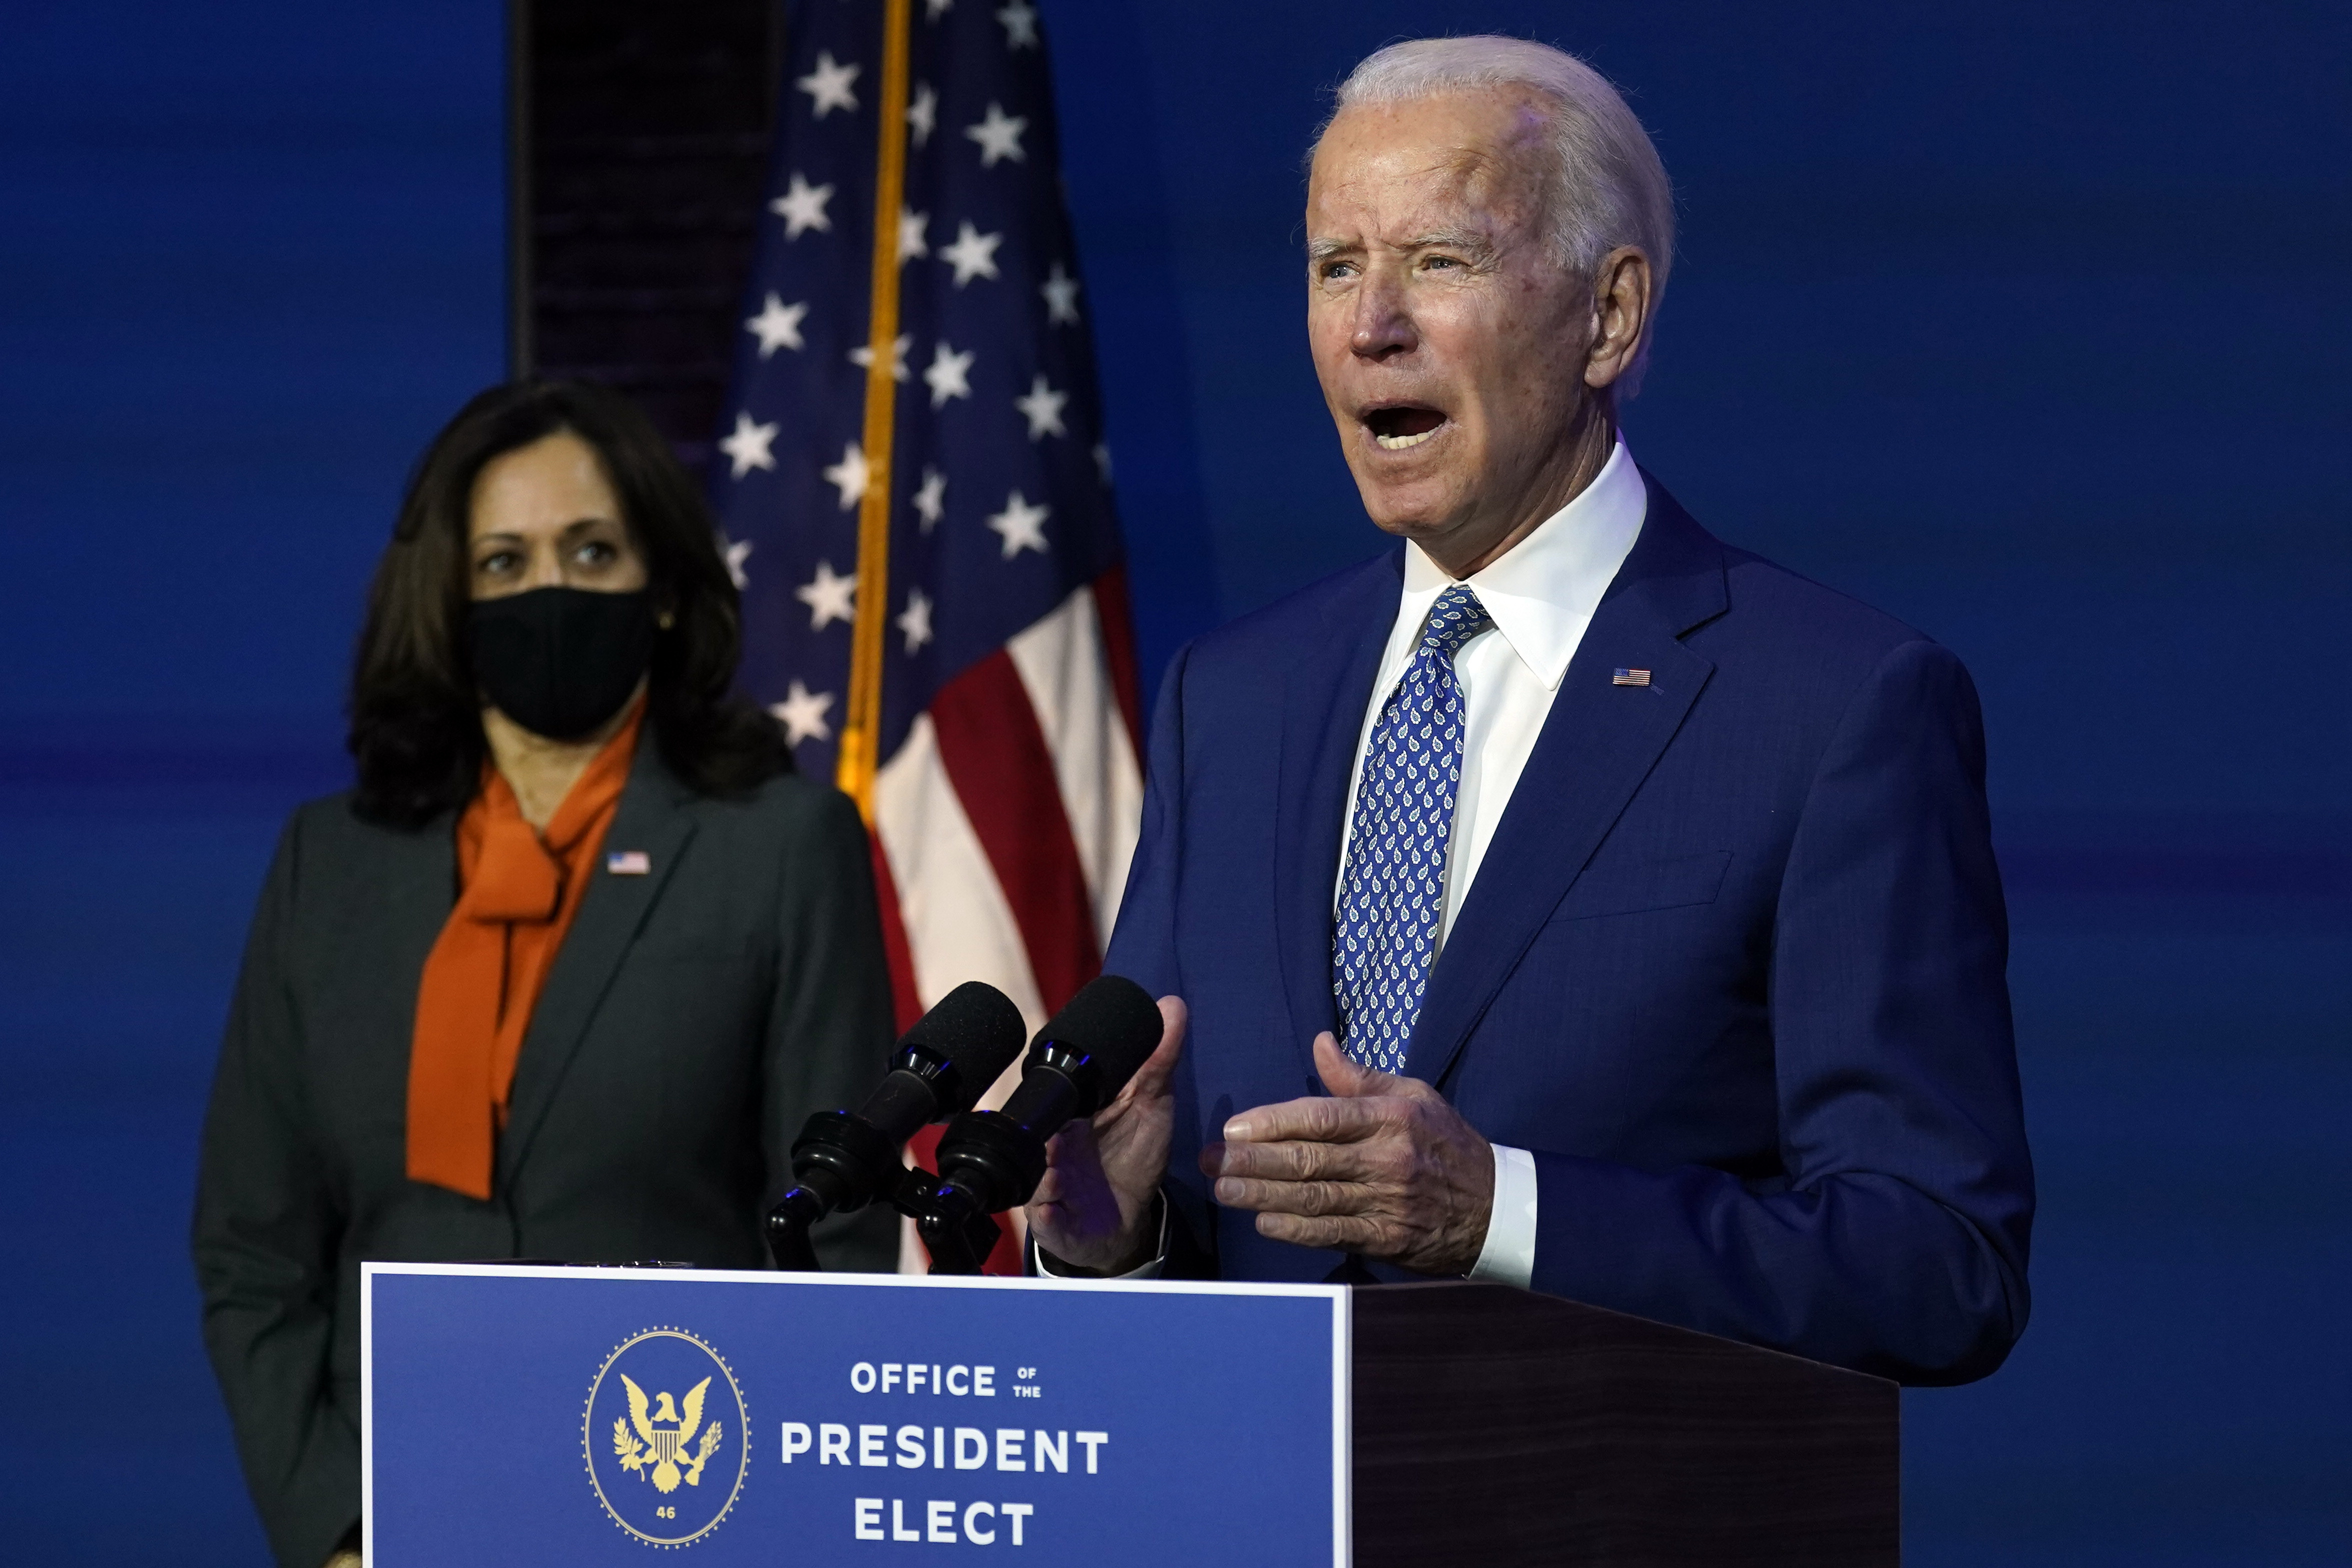 President-elect Joe Biden speaks Monday, Nov. 9, 2020, at The Queen theater in Wilmington, Del., as Vice President-elect Kamala Harris listens. Community leaders are unsure of what this administration will do to address criminal justice.